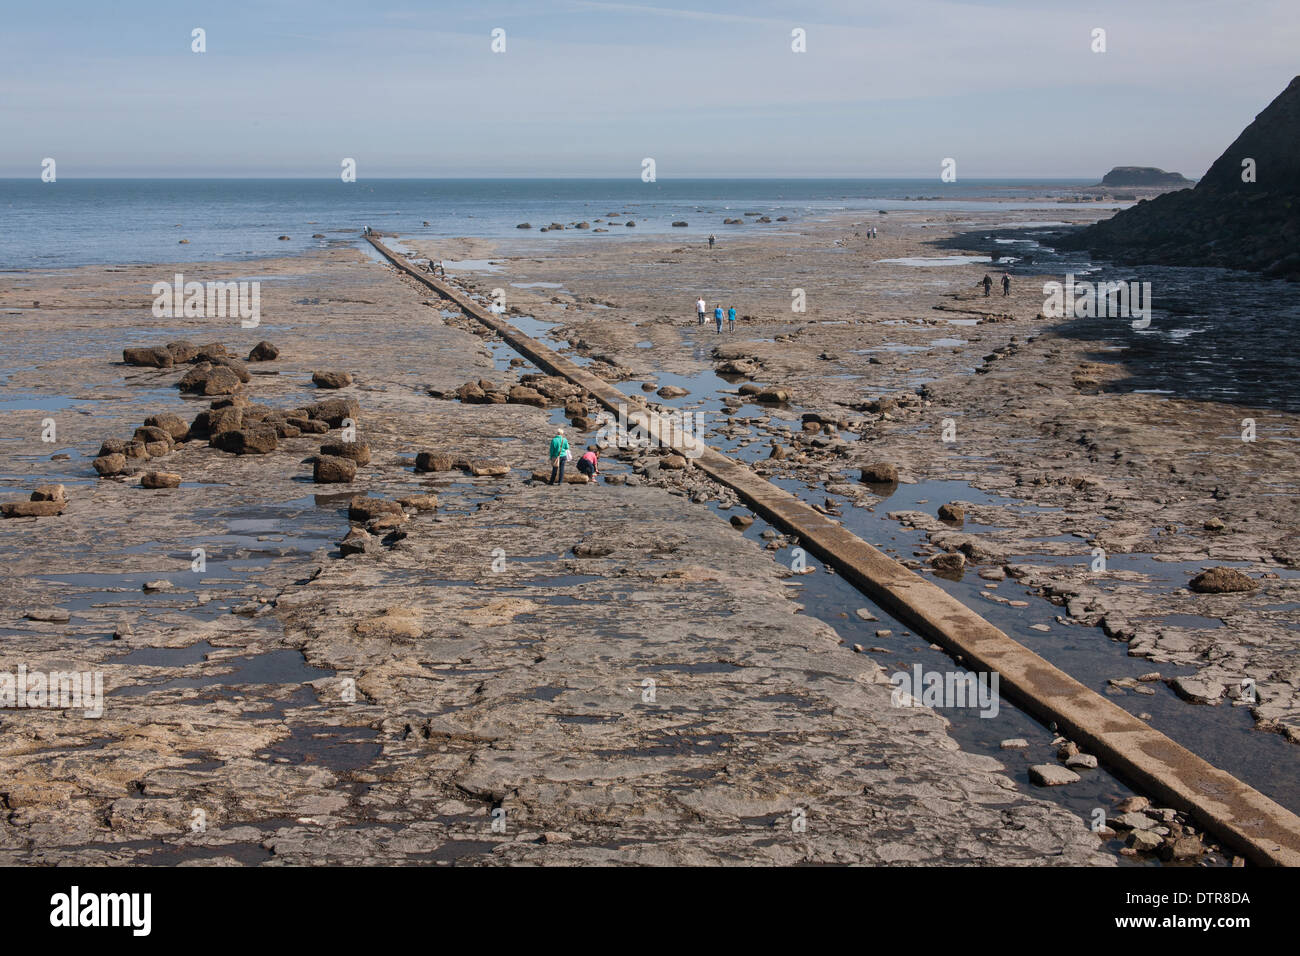 Waste Pipe Sea Bound and Tourists, Whitby, East Yorkshire, England - Stock Image